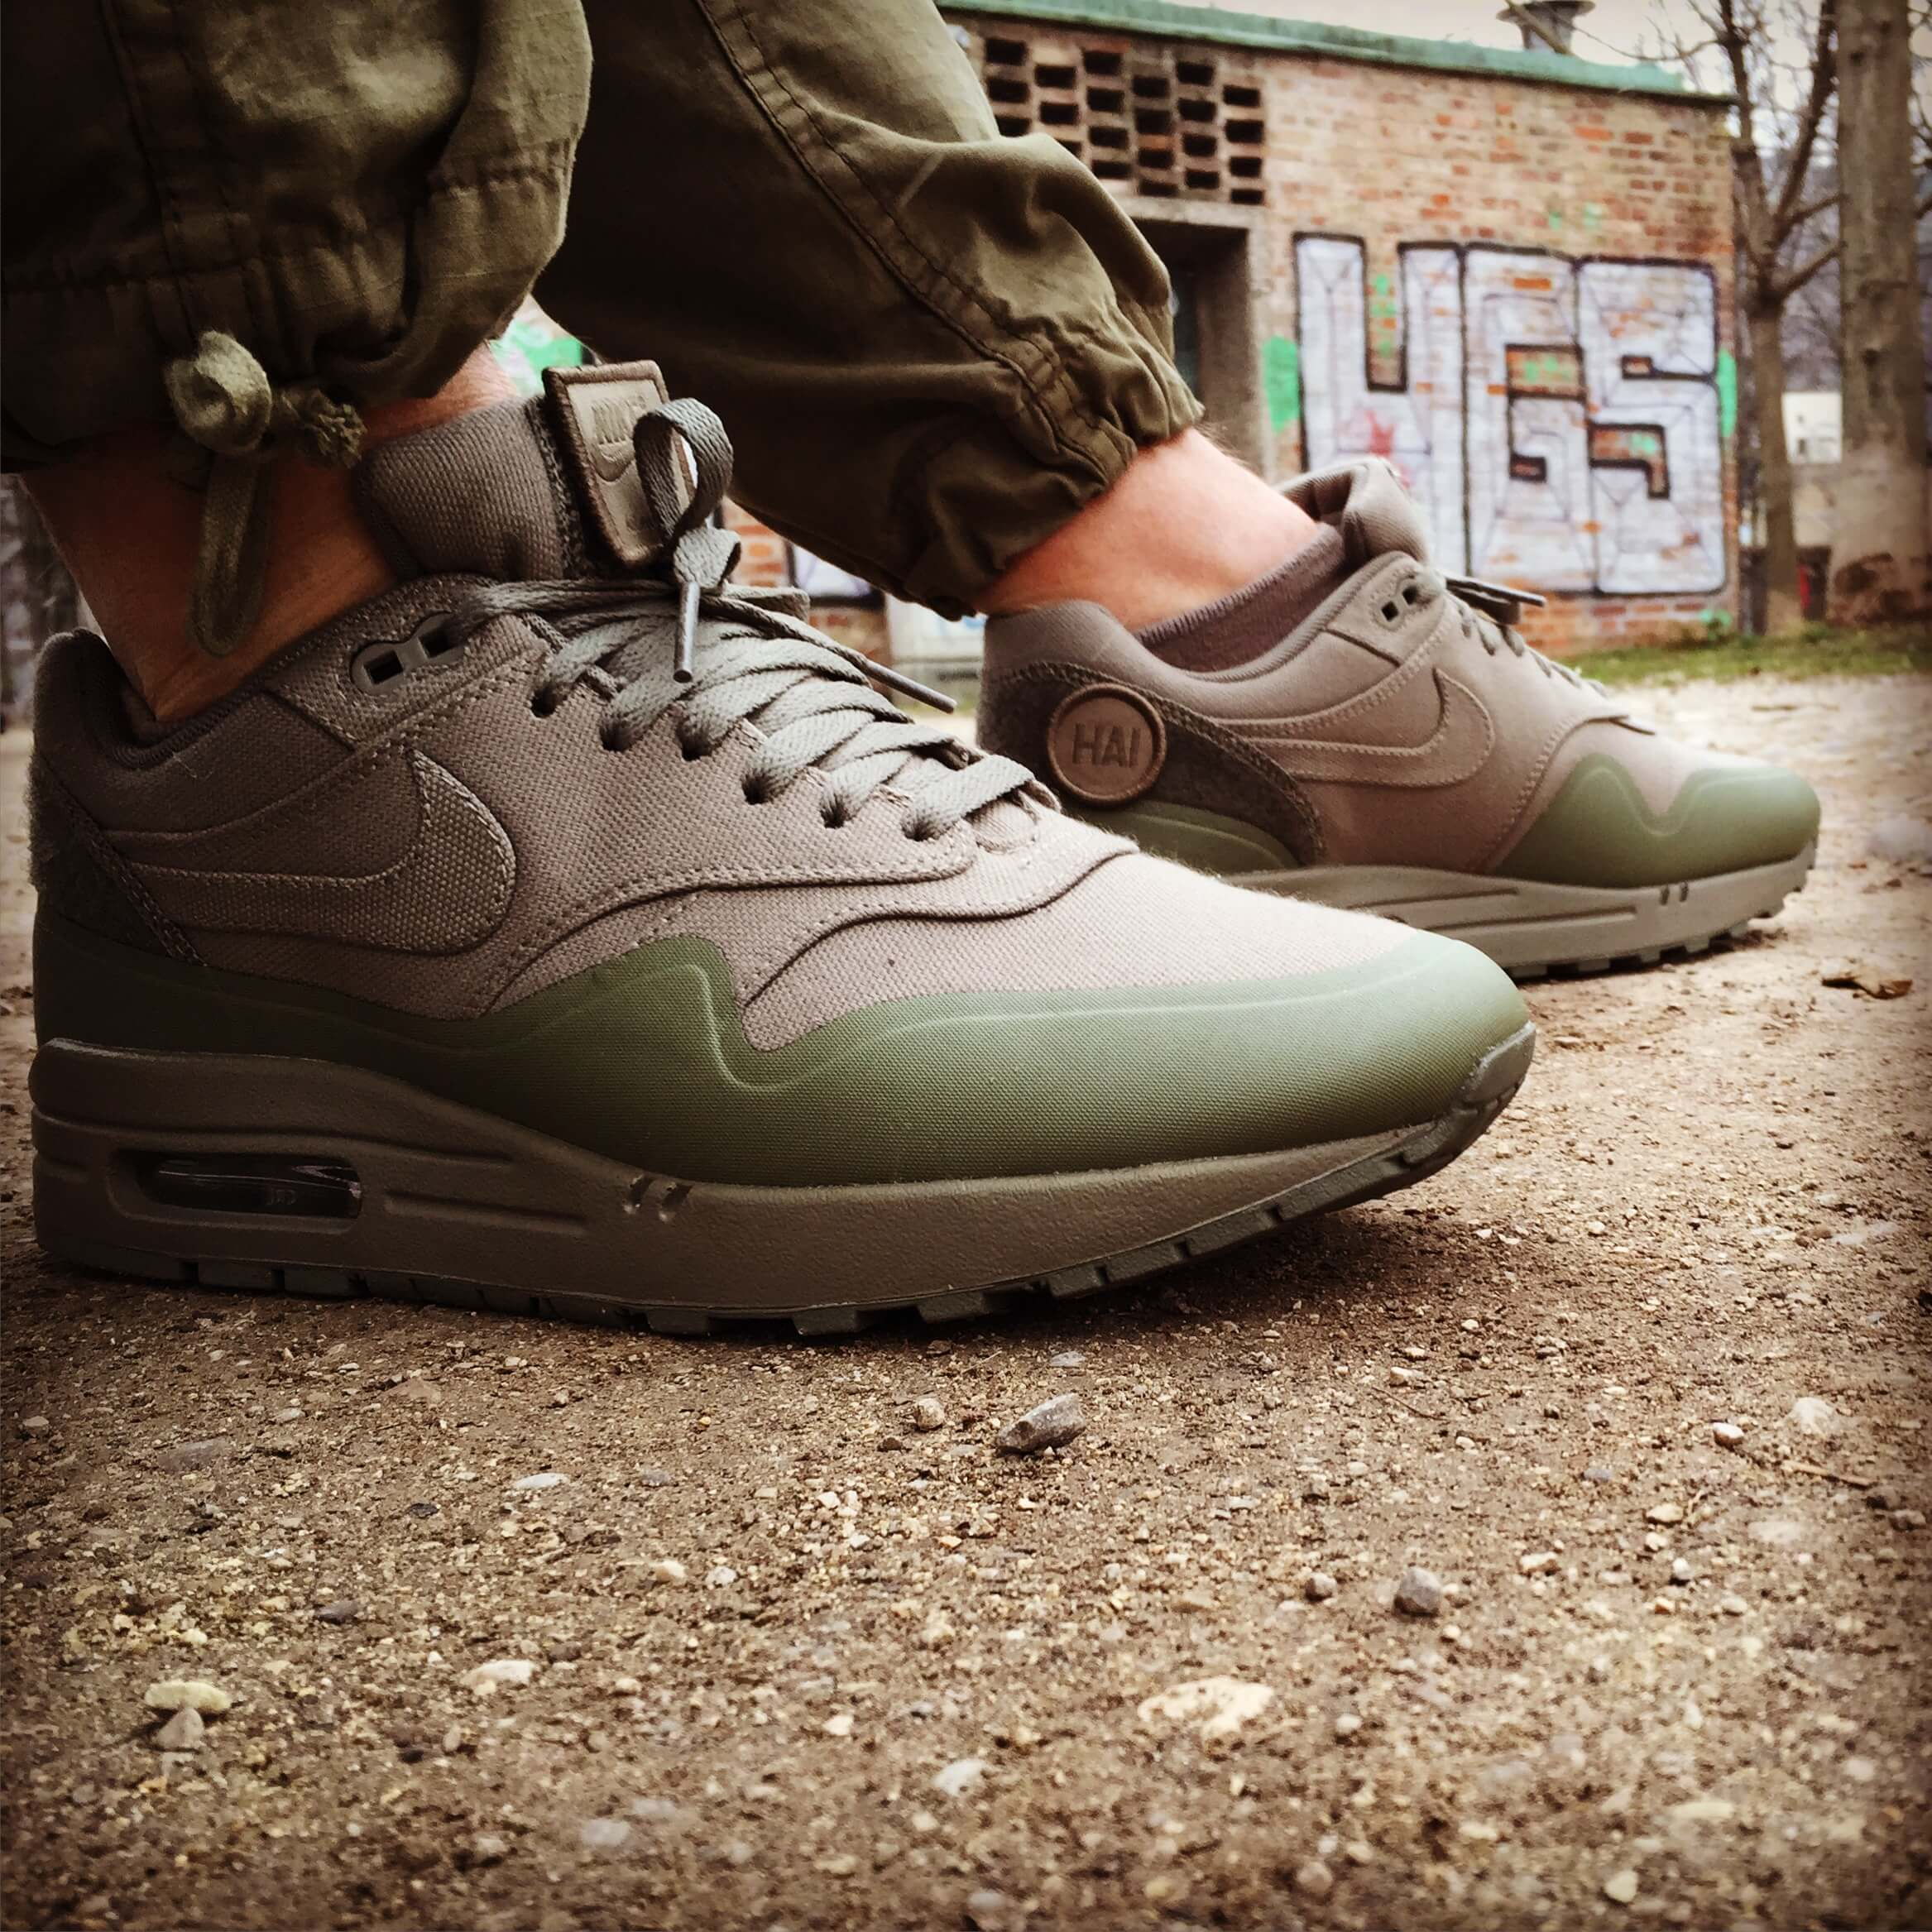 Nike-Air-Max-Patch-Pack-Side-View-Benstah-Onfeet